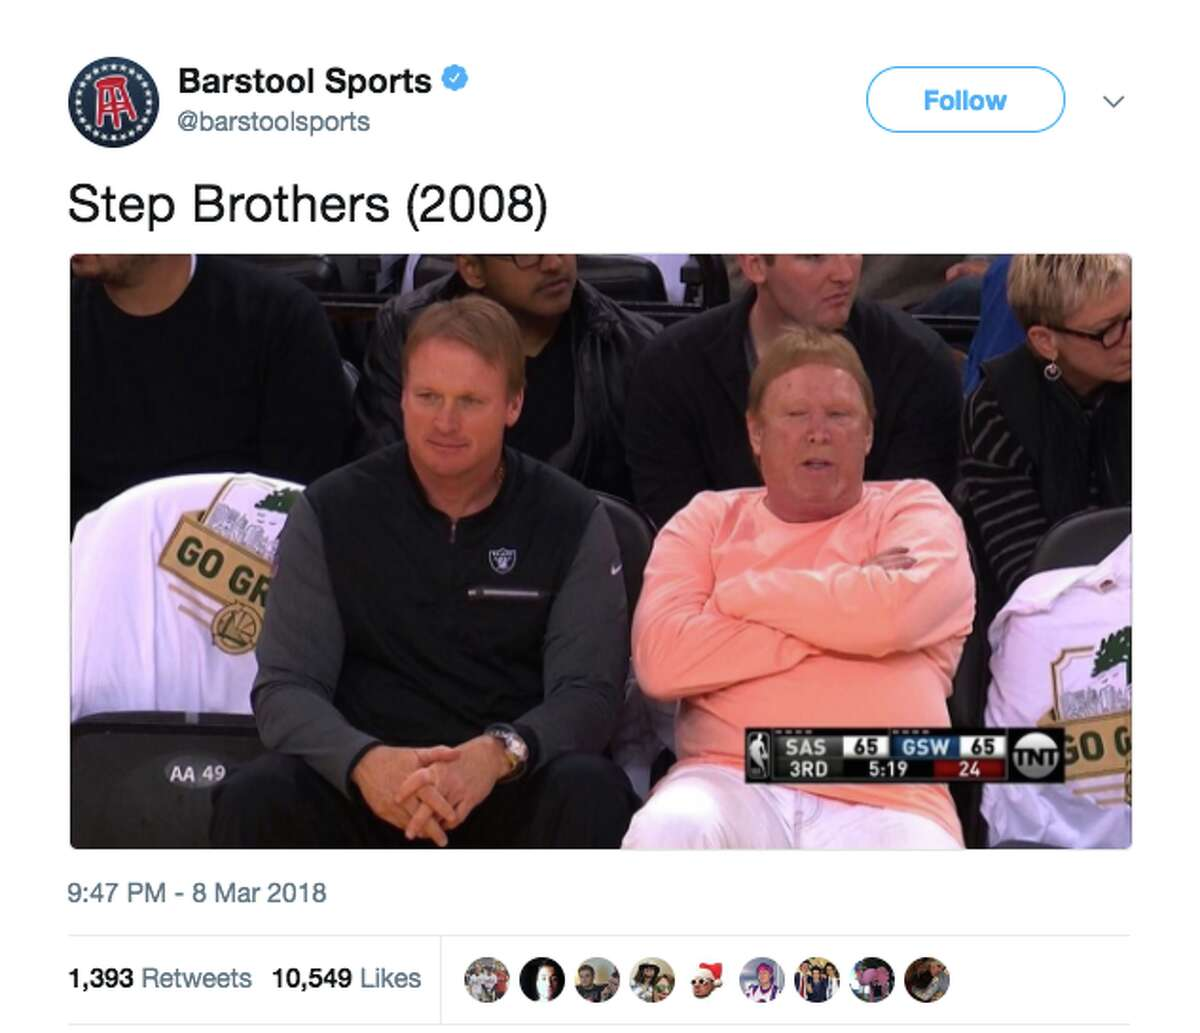 Mark Davis and Jon Gruden's appearance at a Warriors game spawned glorious memes.